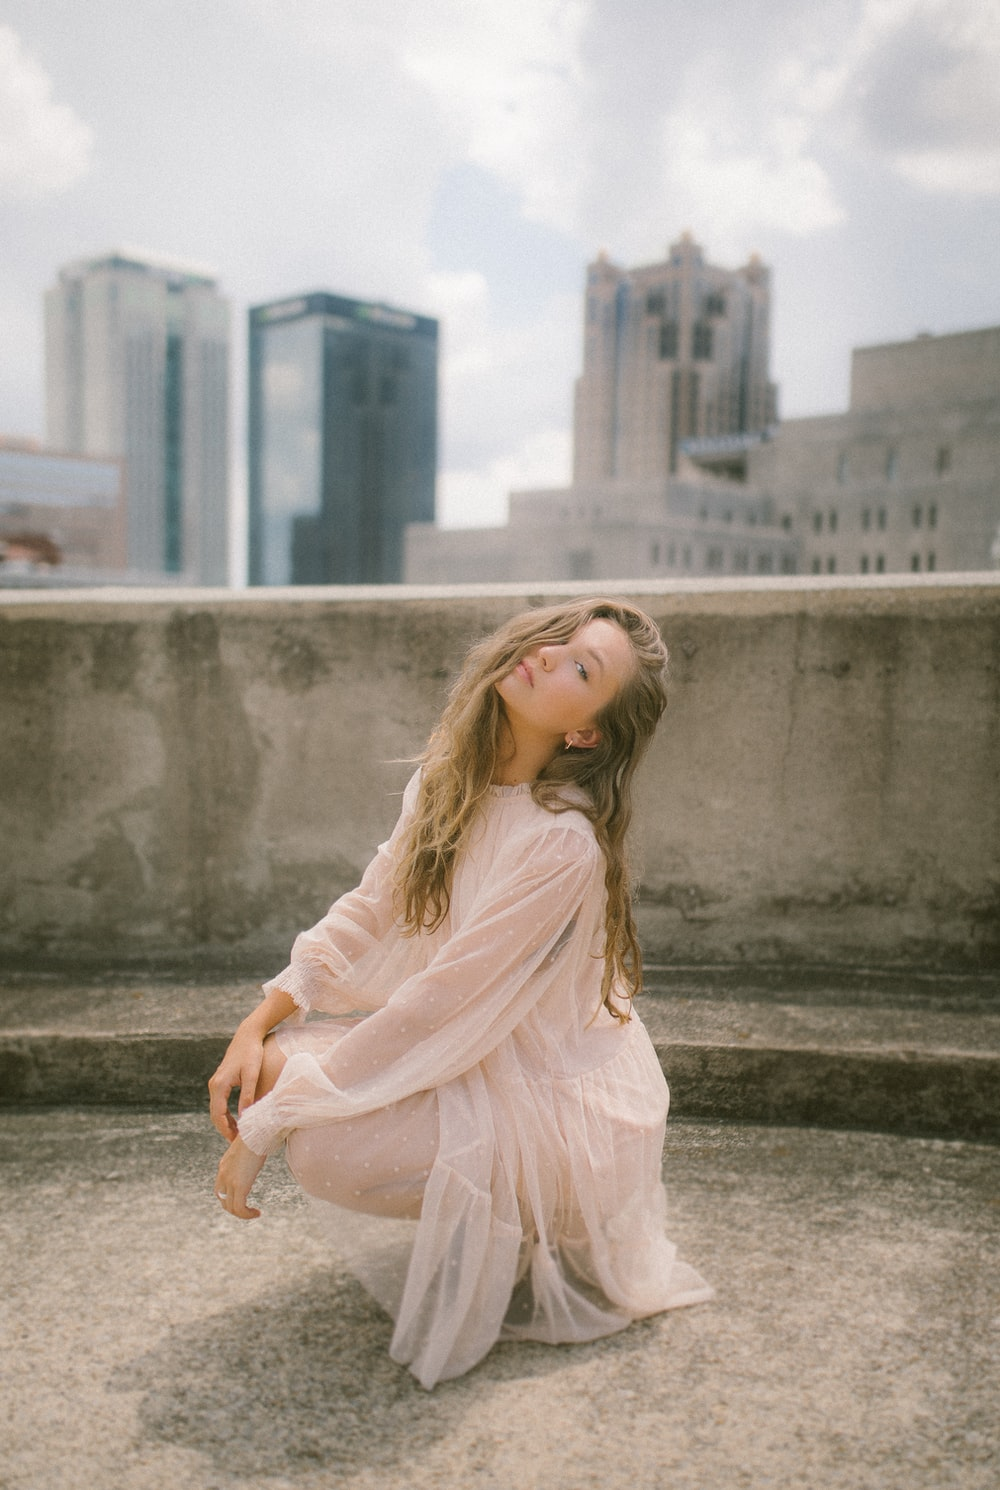 woman in pink long sleeve dress sitting on concrete bench during daytime